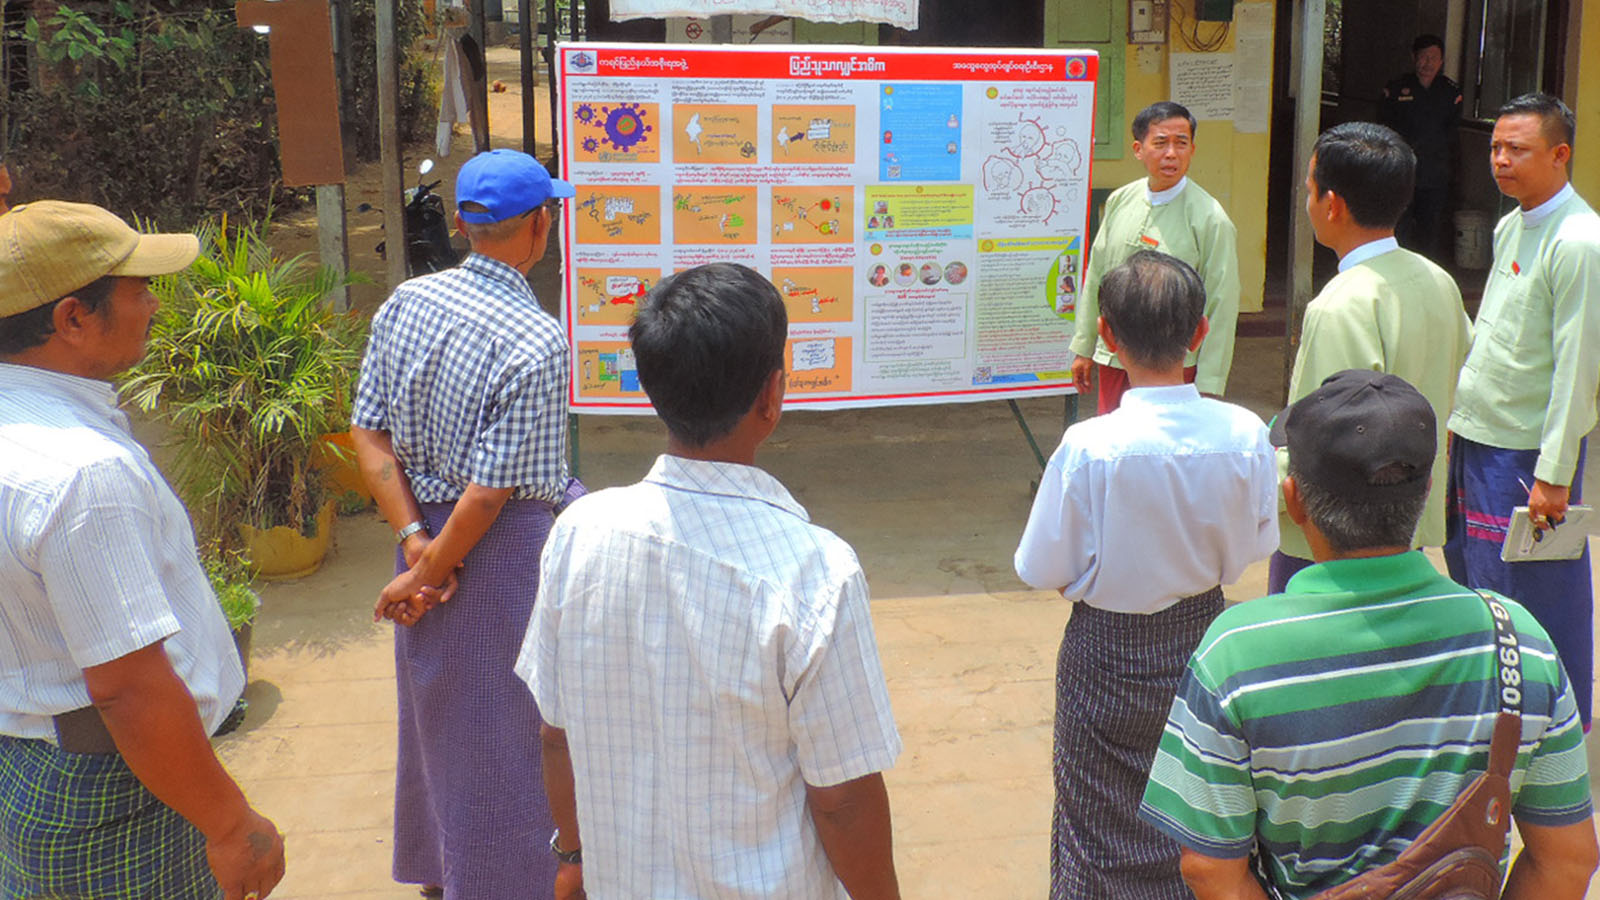 The COVID-19 awareness billboard  being installed at the General Administration Office of Kayin State.Photo: Saw Myo Min Thein (IPRD)